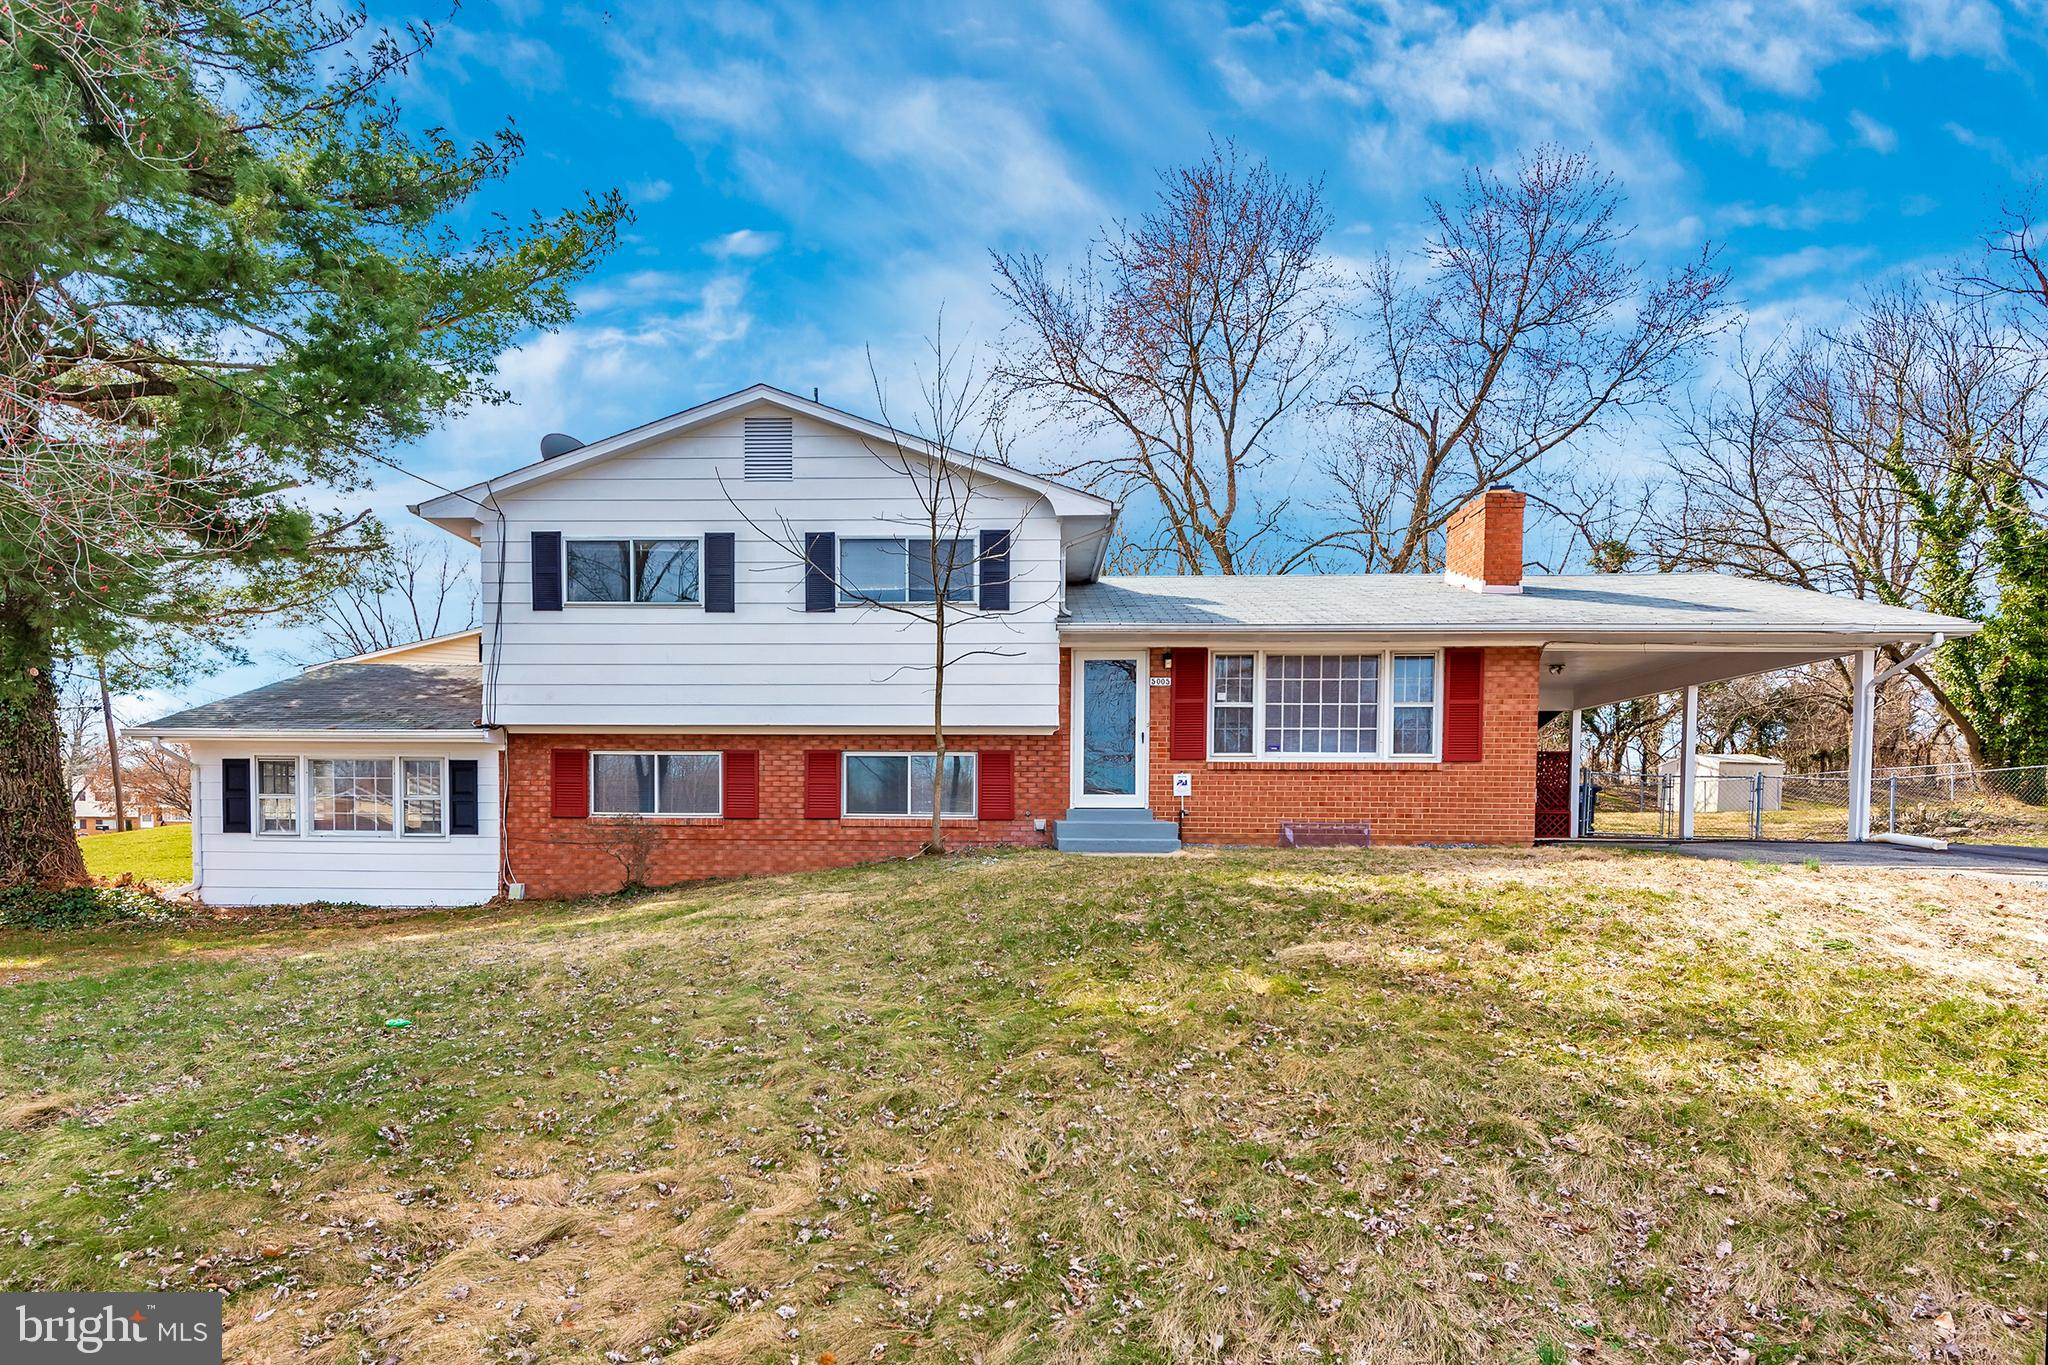 5005 COLONIAL DRIVE, TEMPLE HILLS, MD 20748